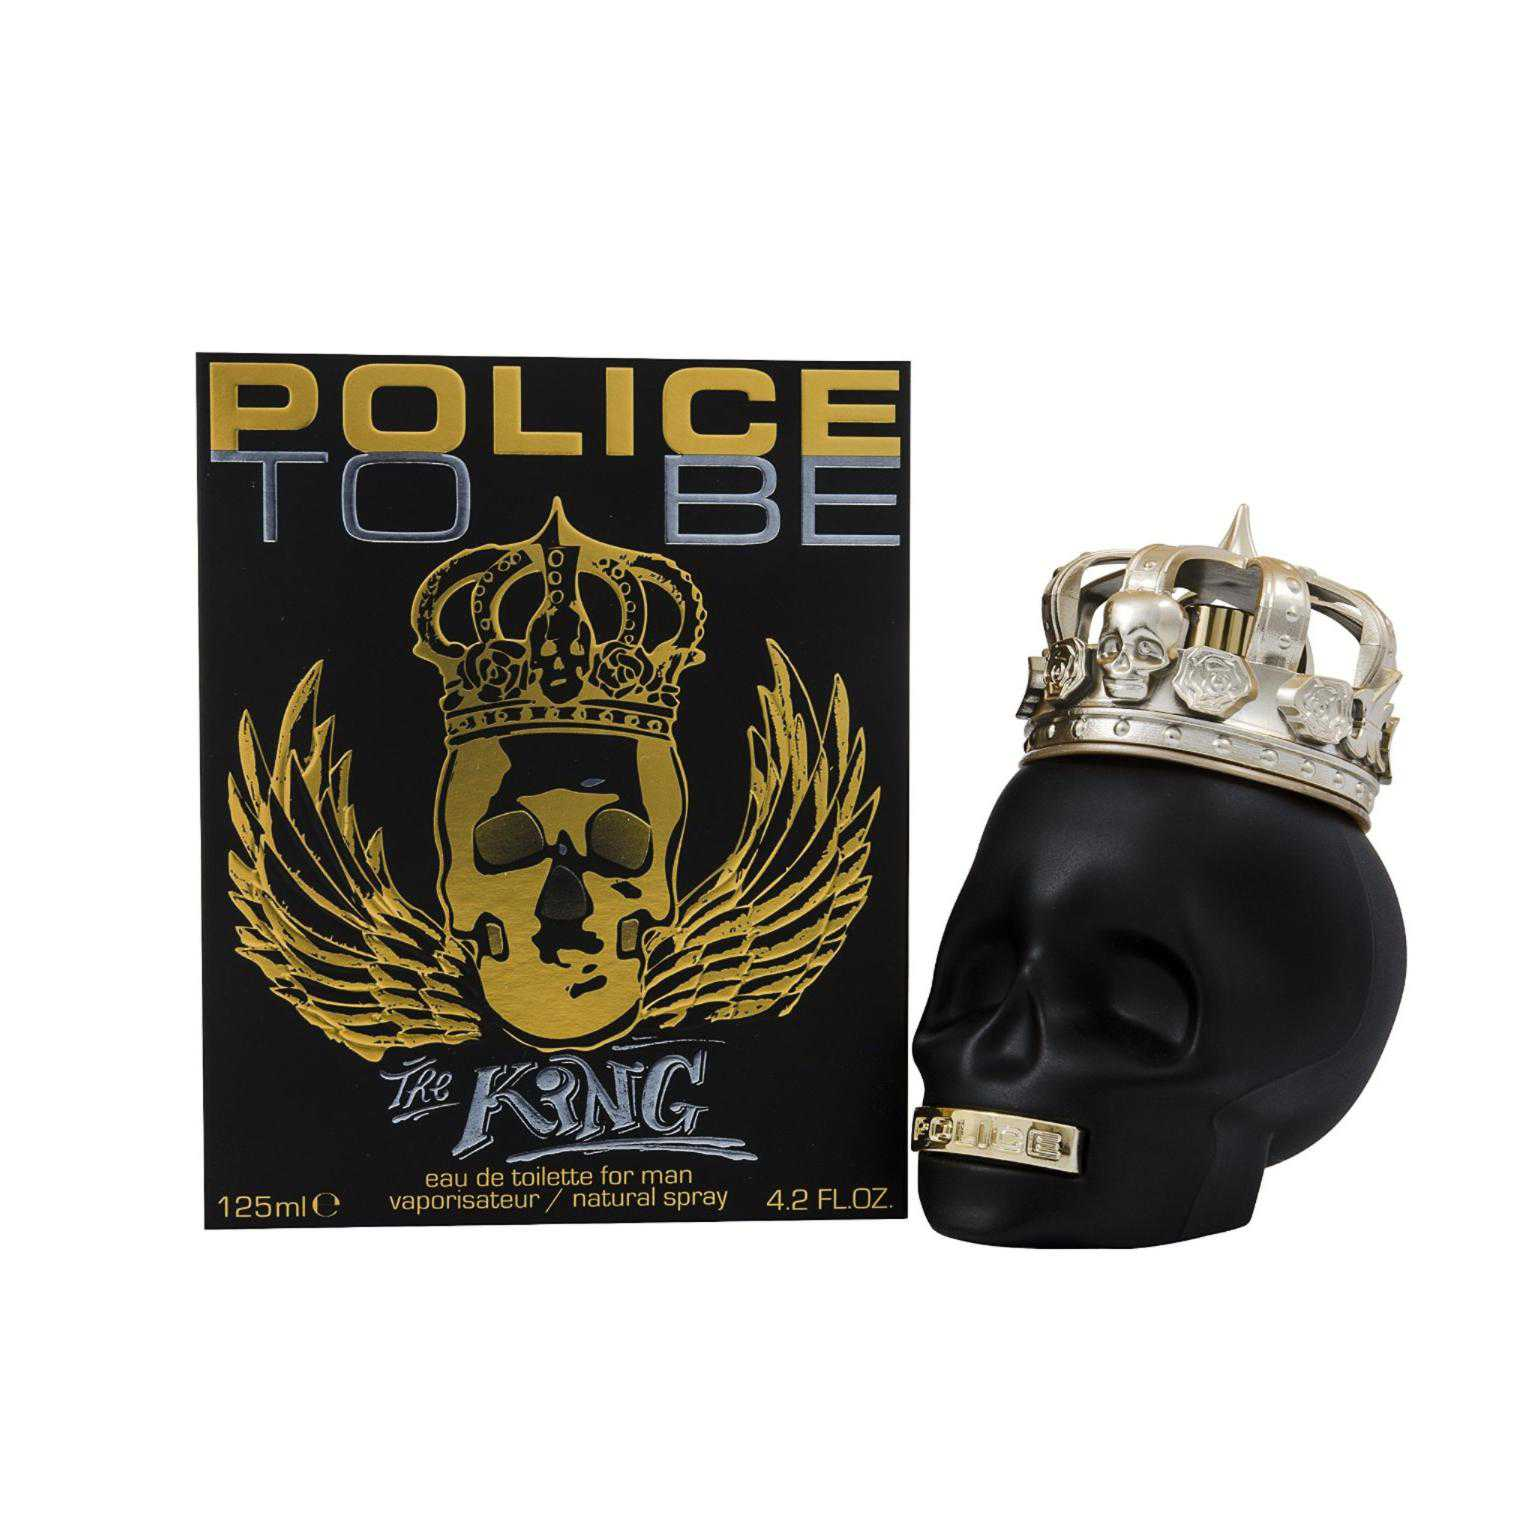 Productafbeelding van Geur Police To Be King Edt He